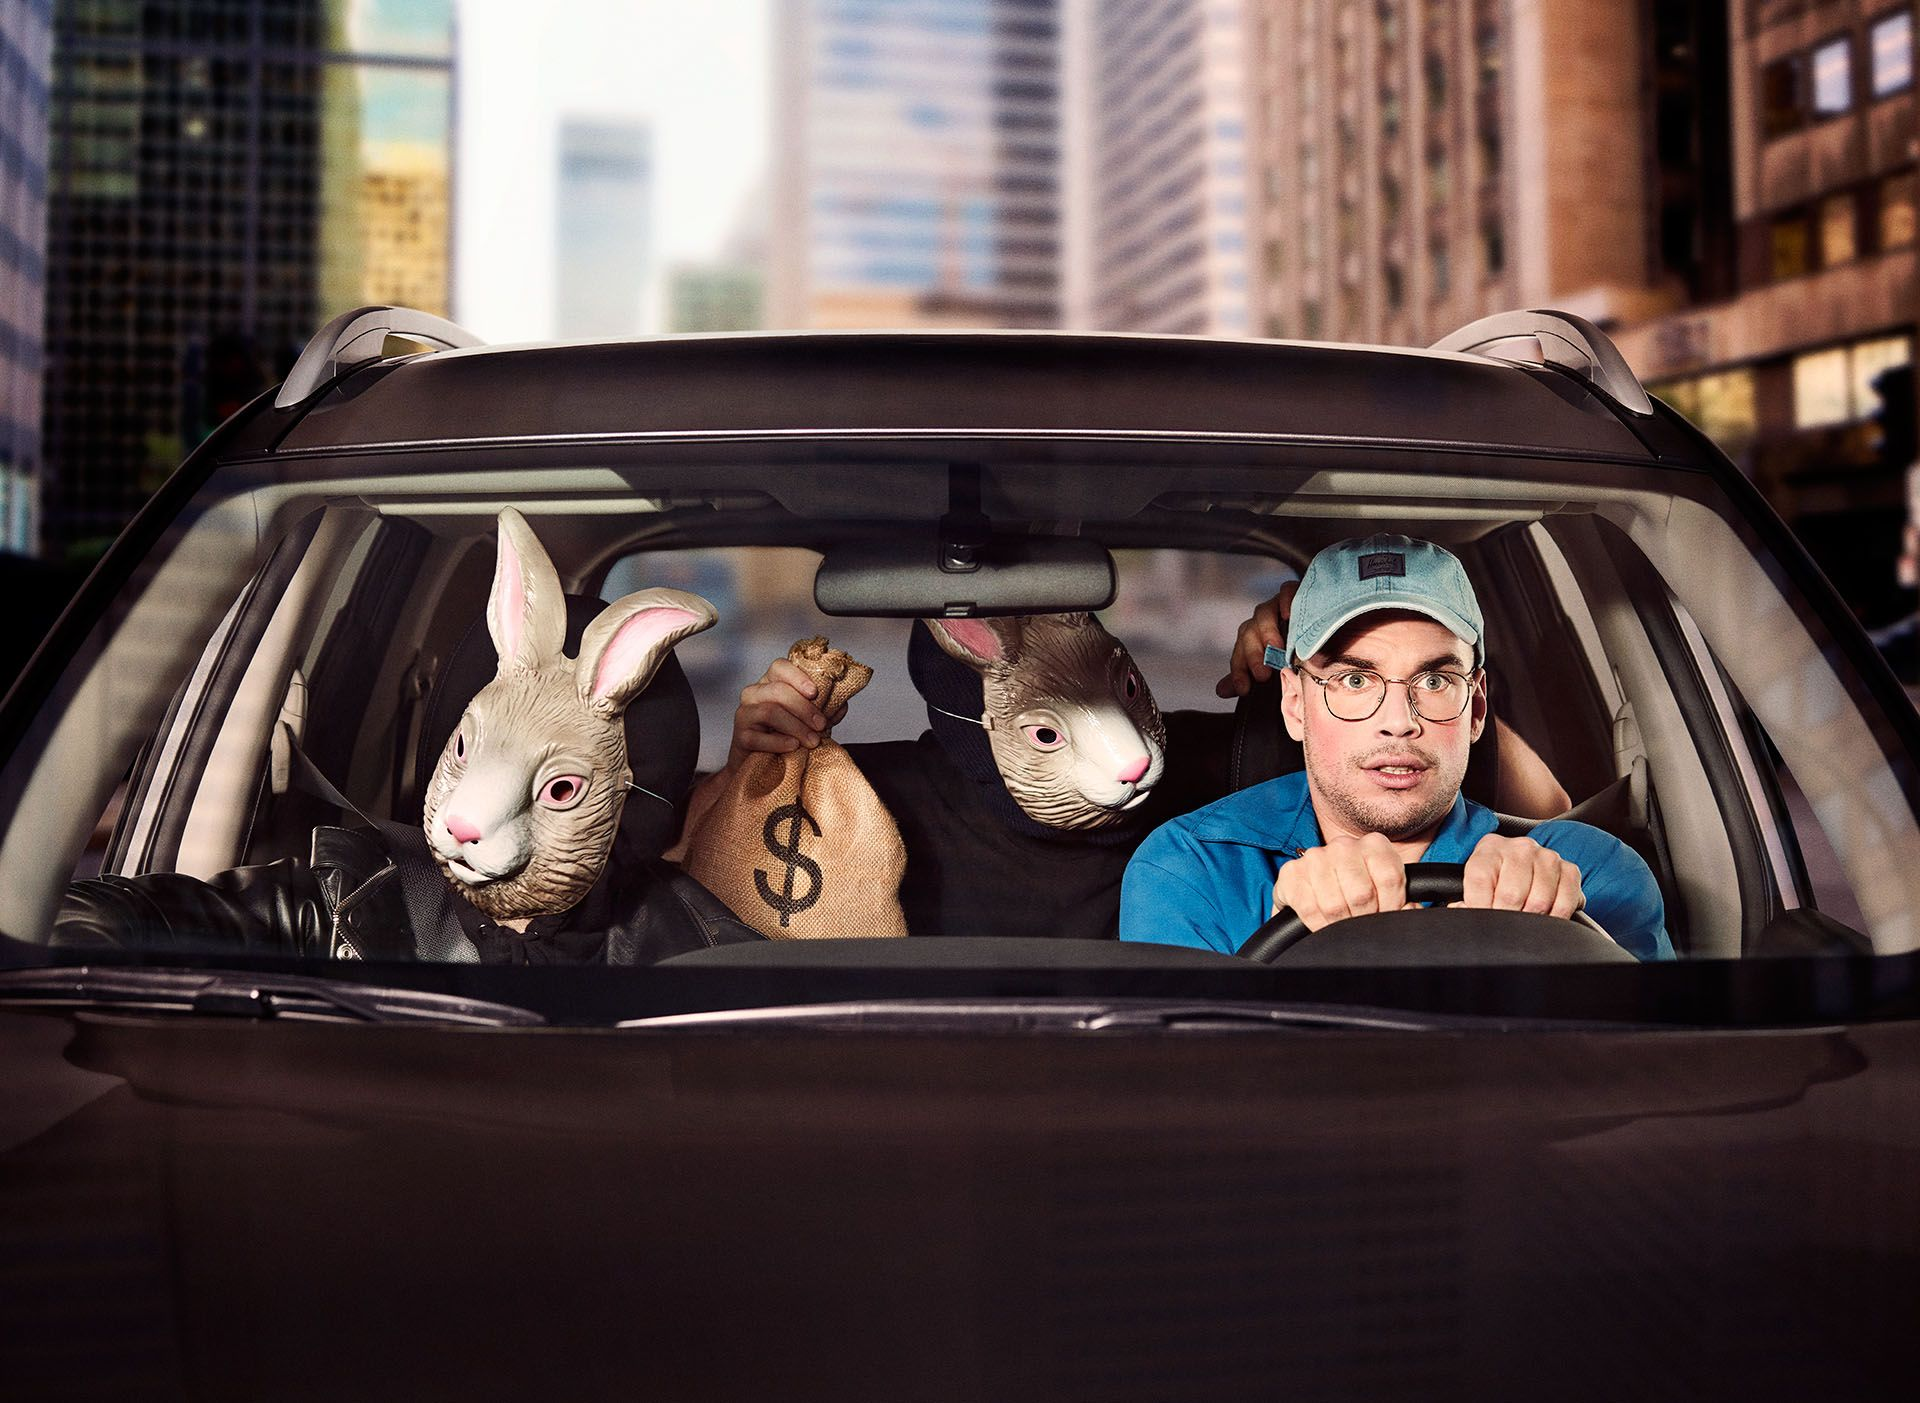 young male driving a car scared two thieves in the car wearing bunny masks holding guns and bags of money by Jocelyn Michel for Netlift